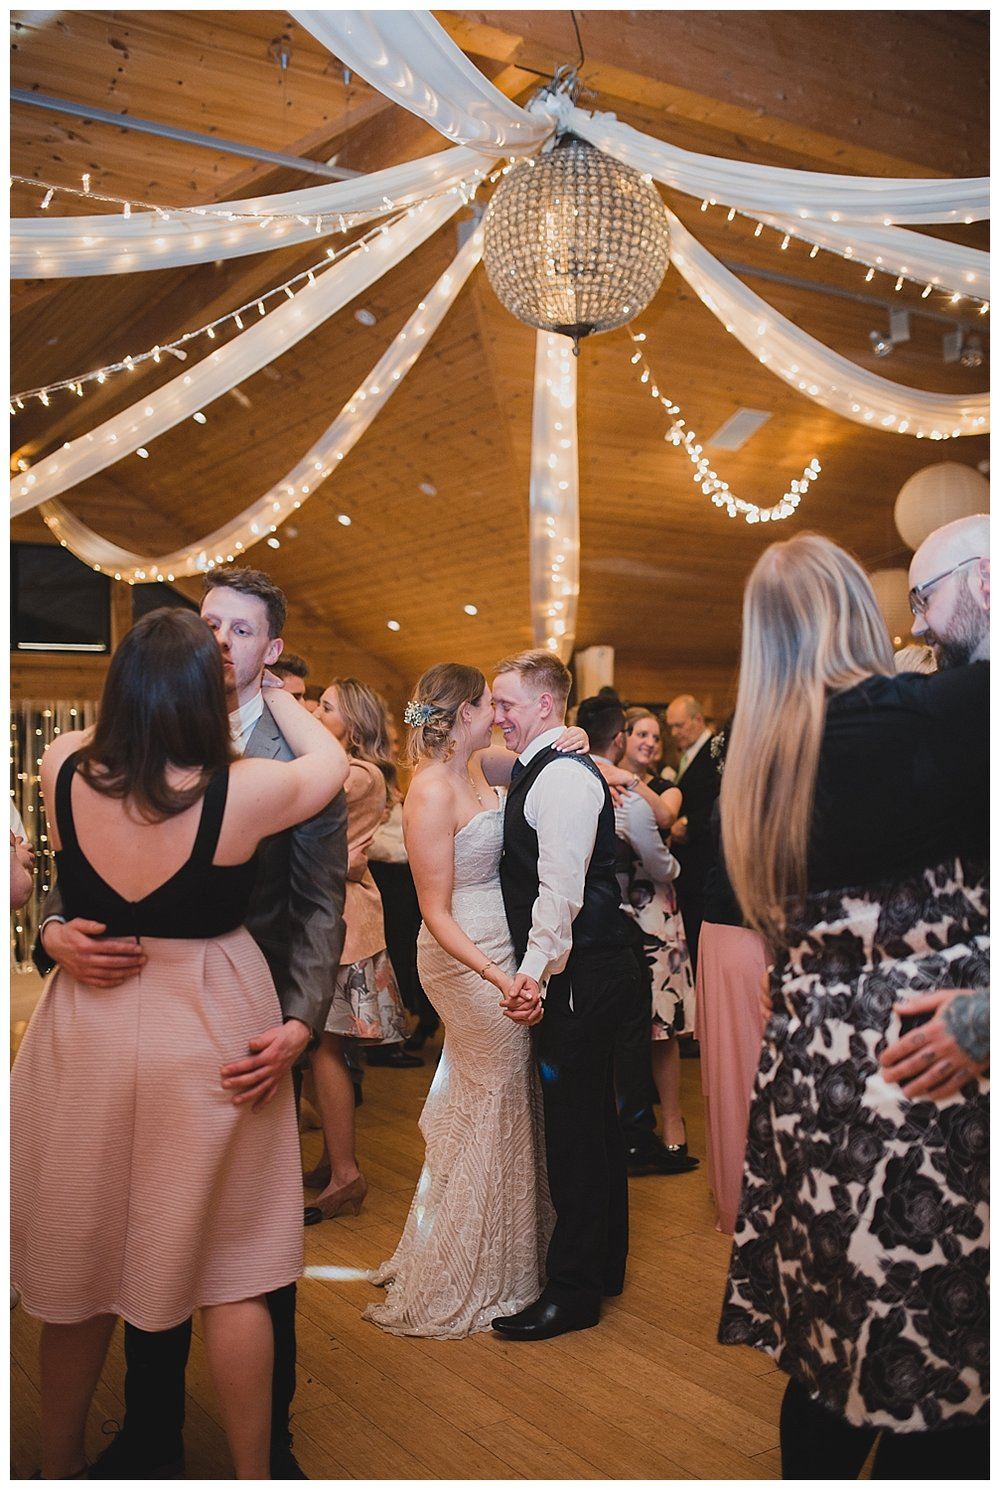 First dance at a winter wedding